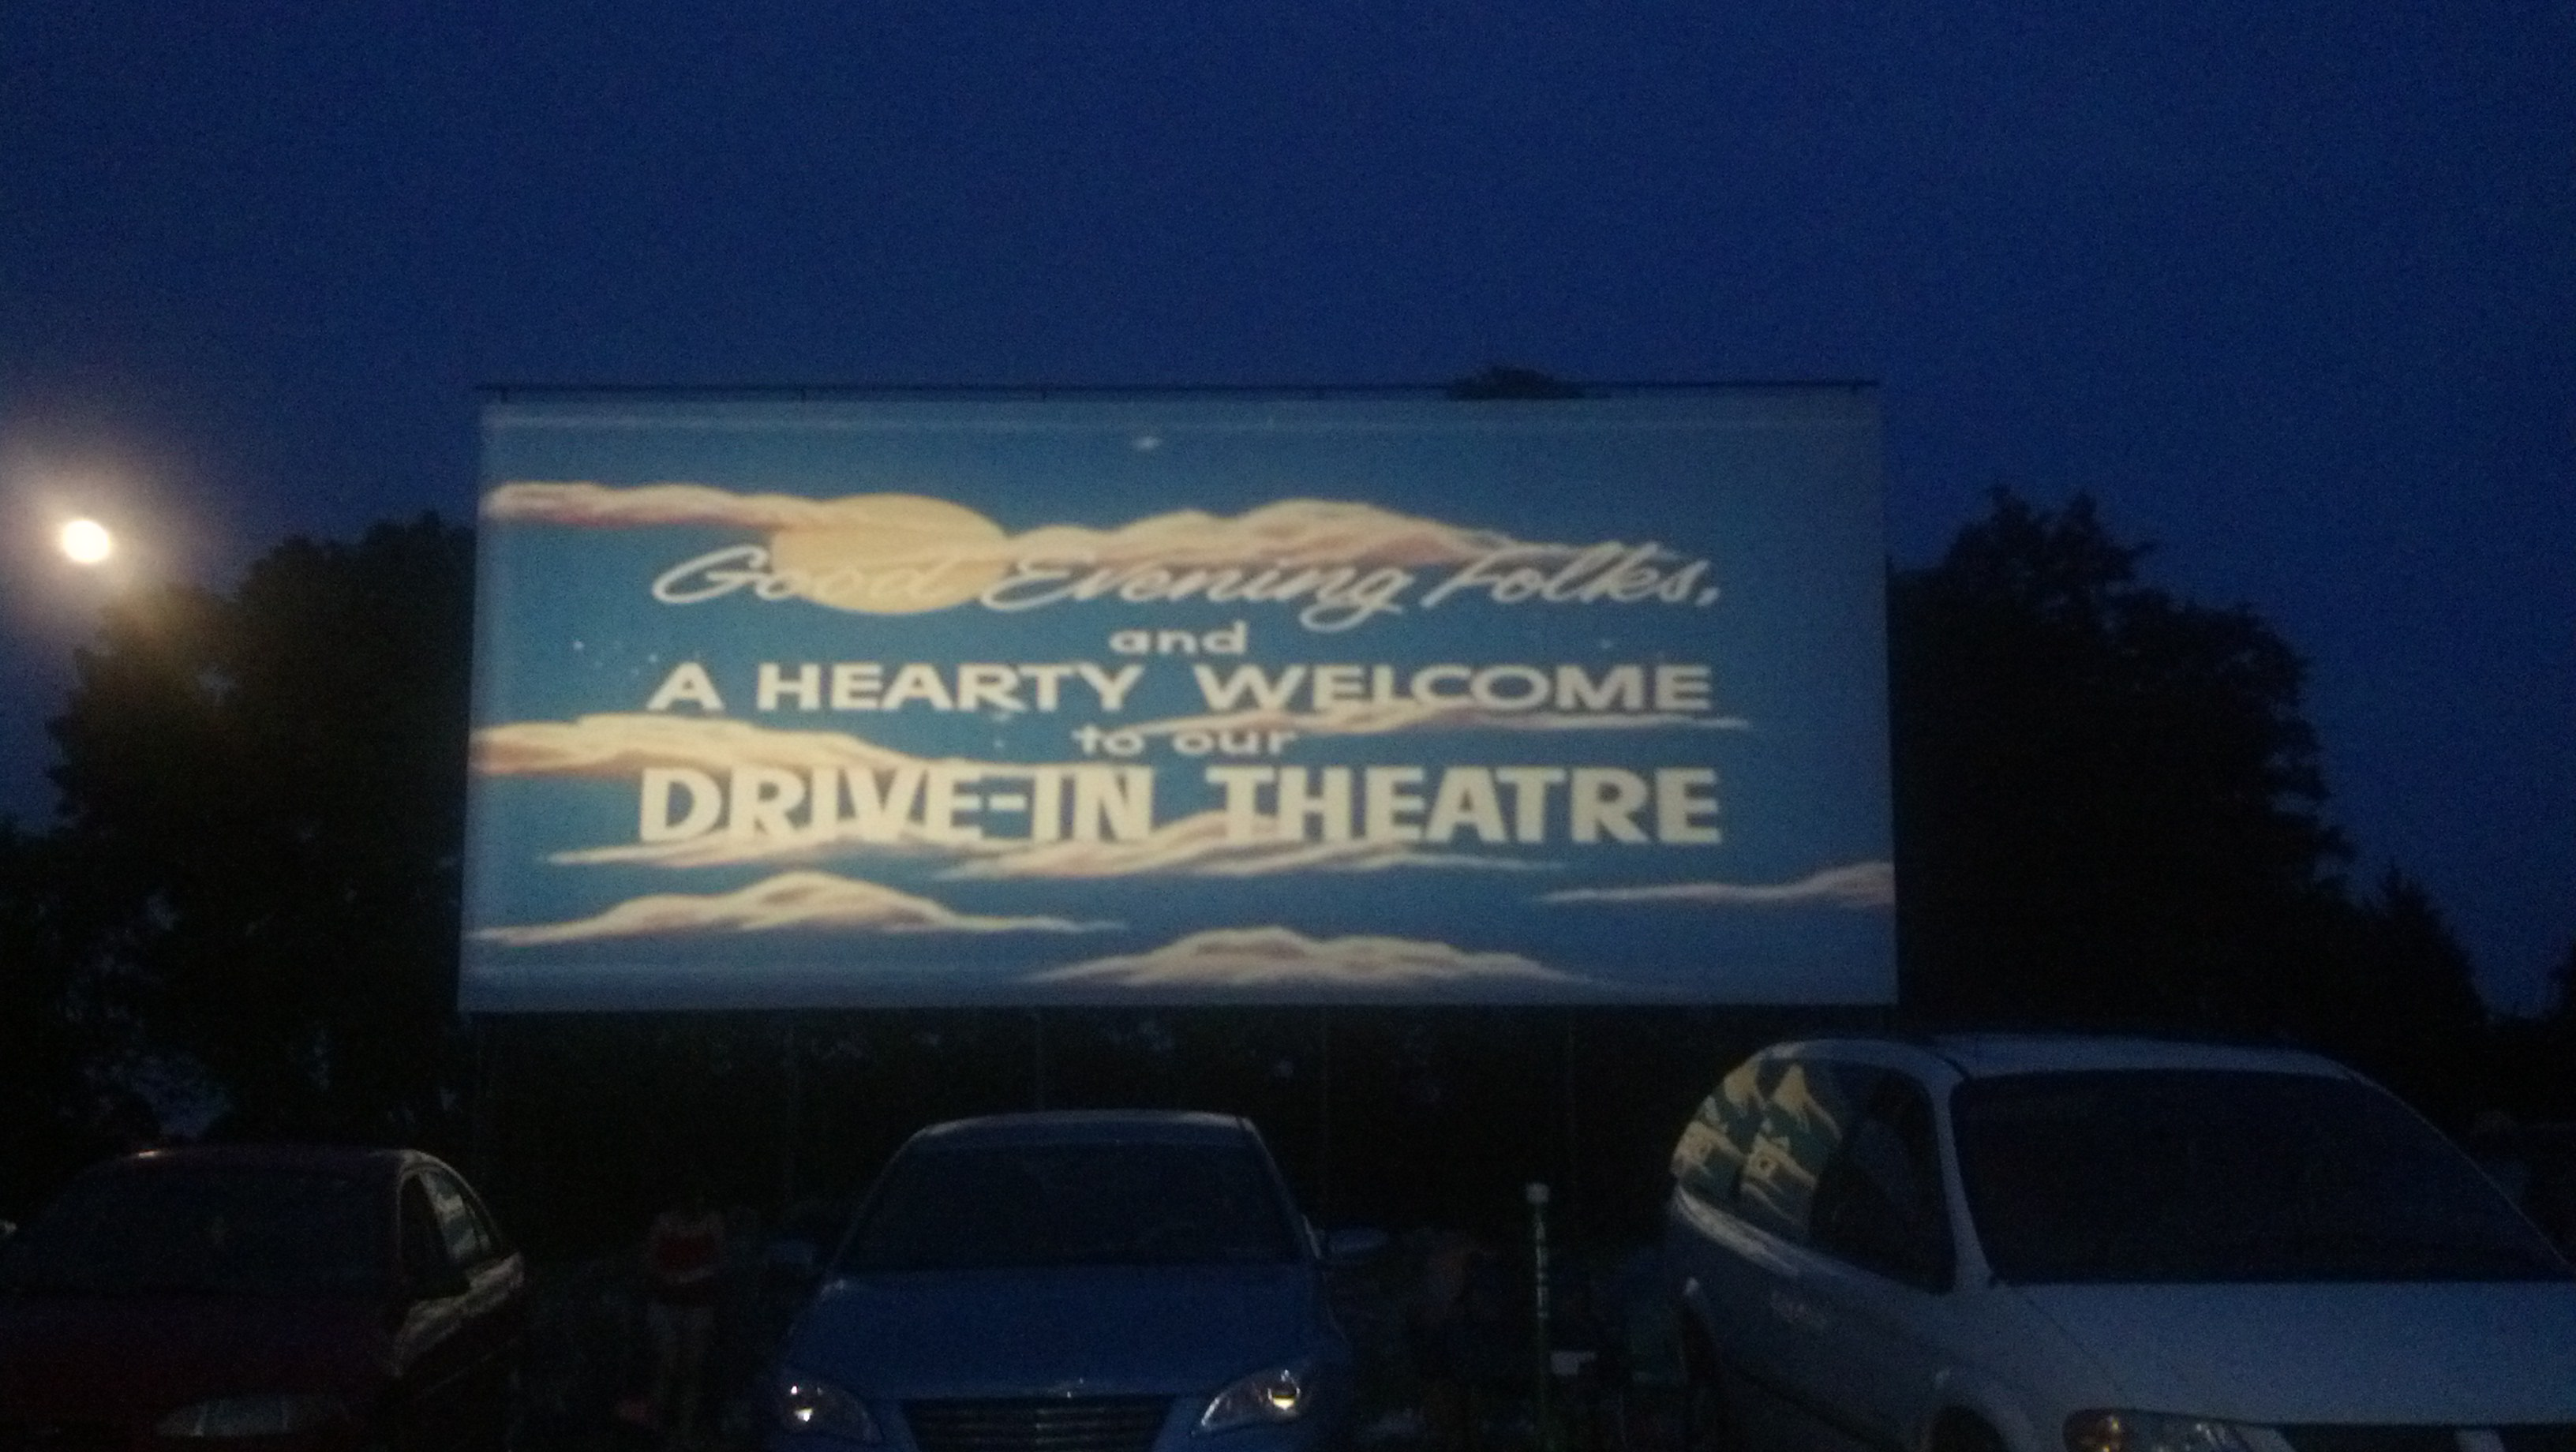 Photo: Drive-in movie theater